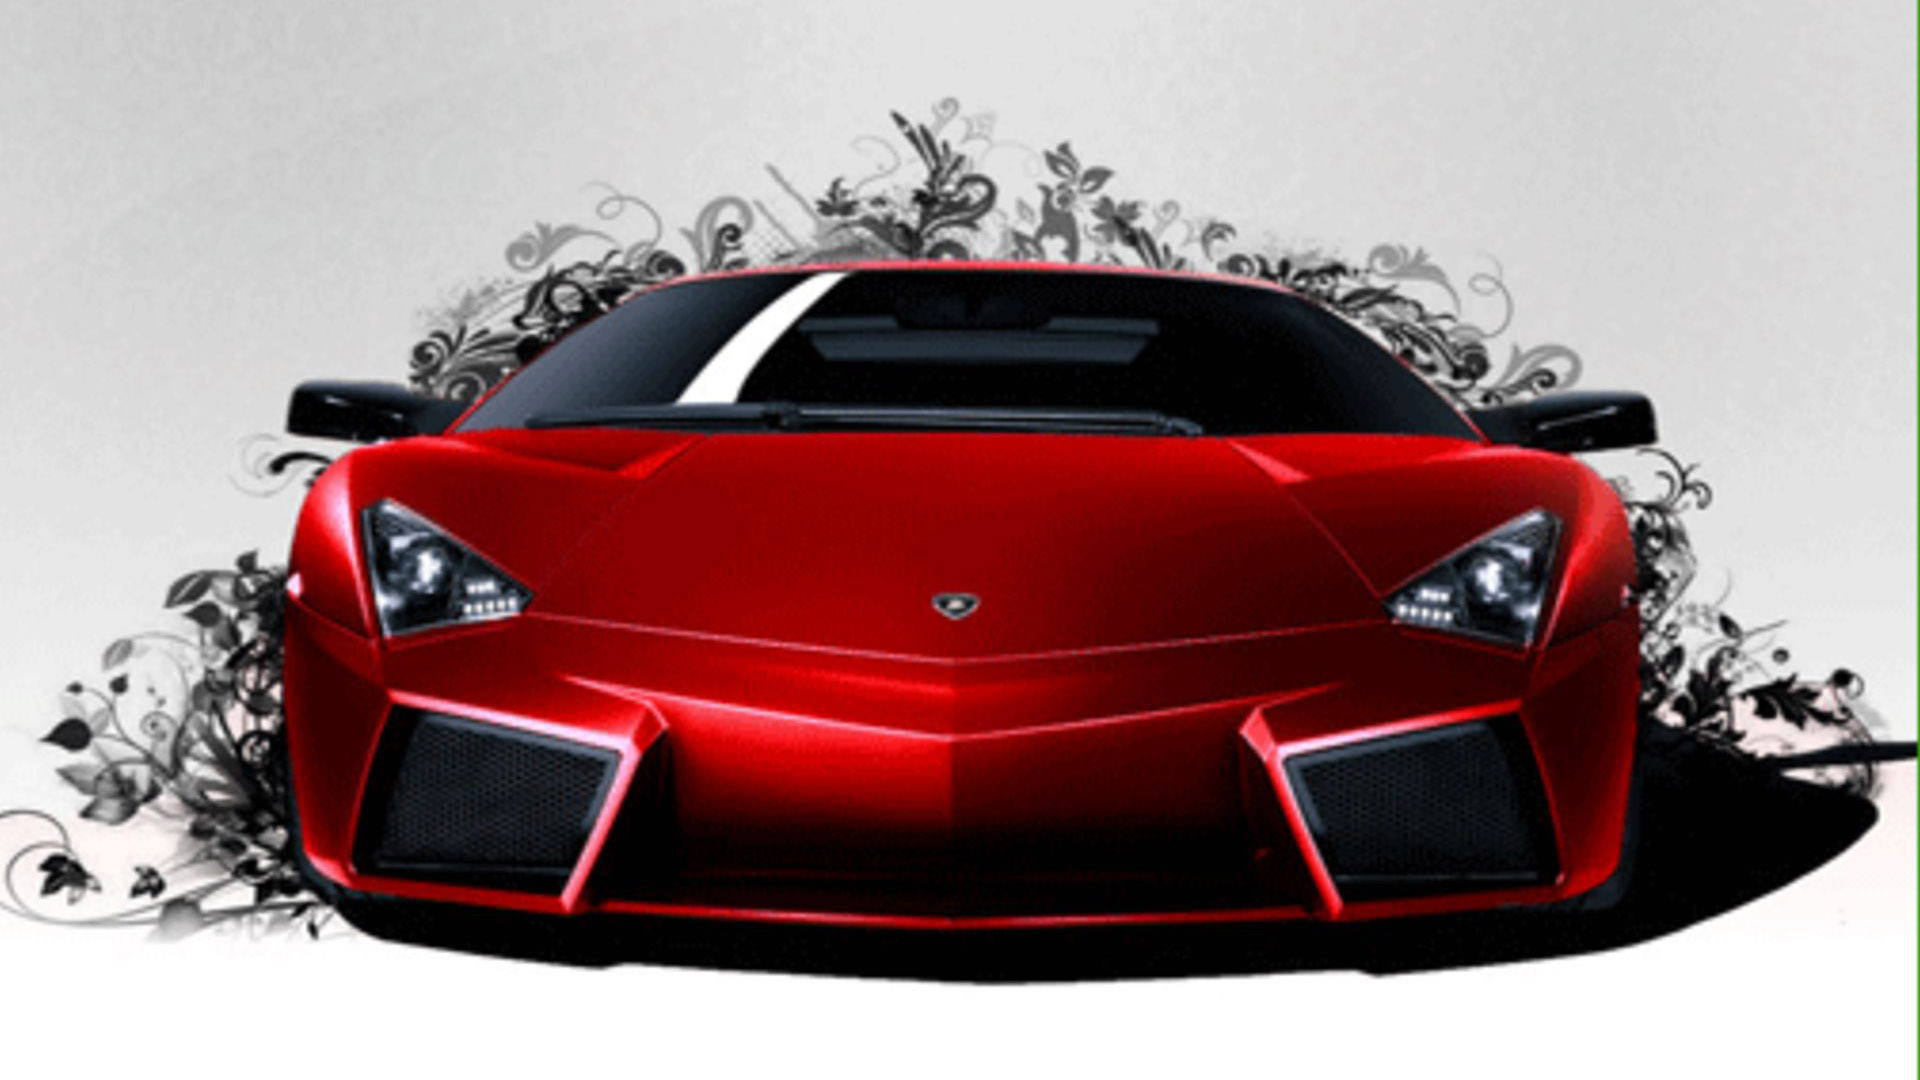 red lamborghini wallpaper 6442 hd wallpapers in cars imagescicom